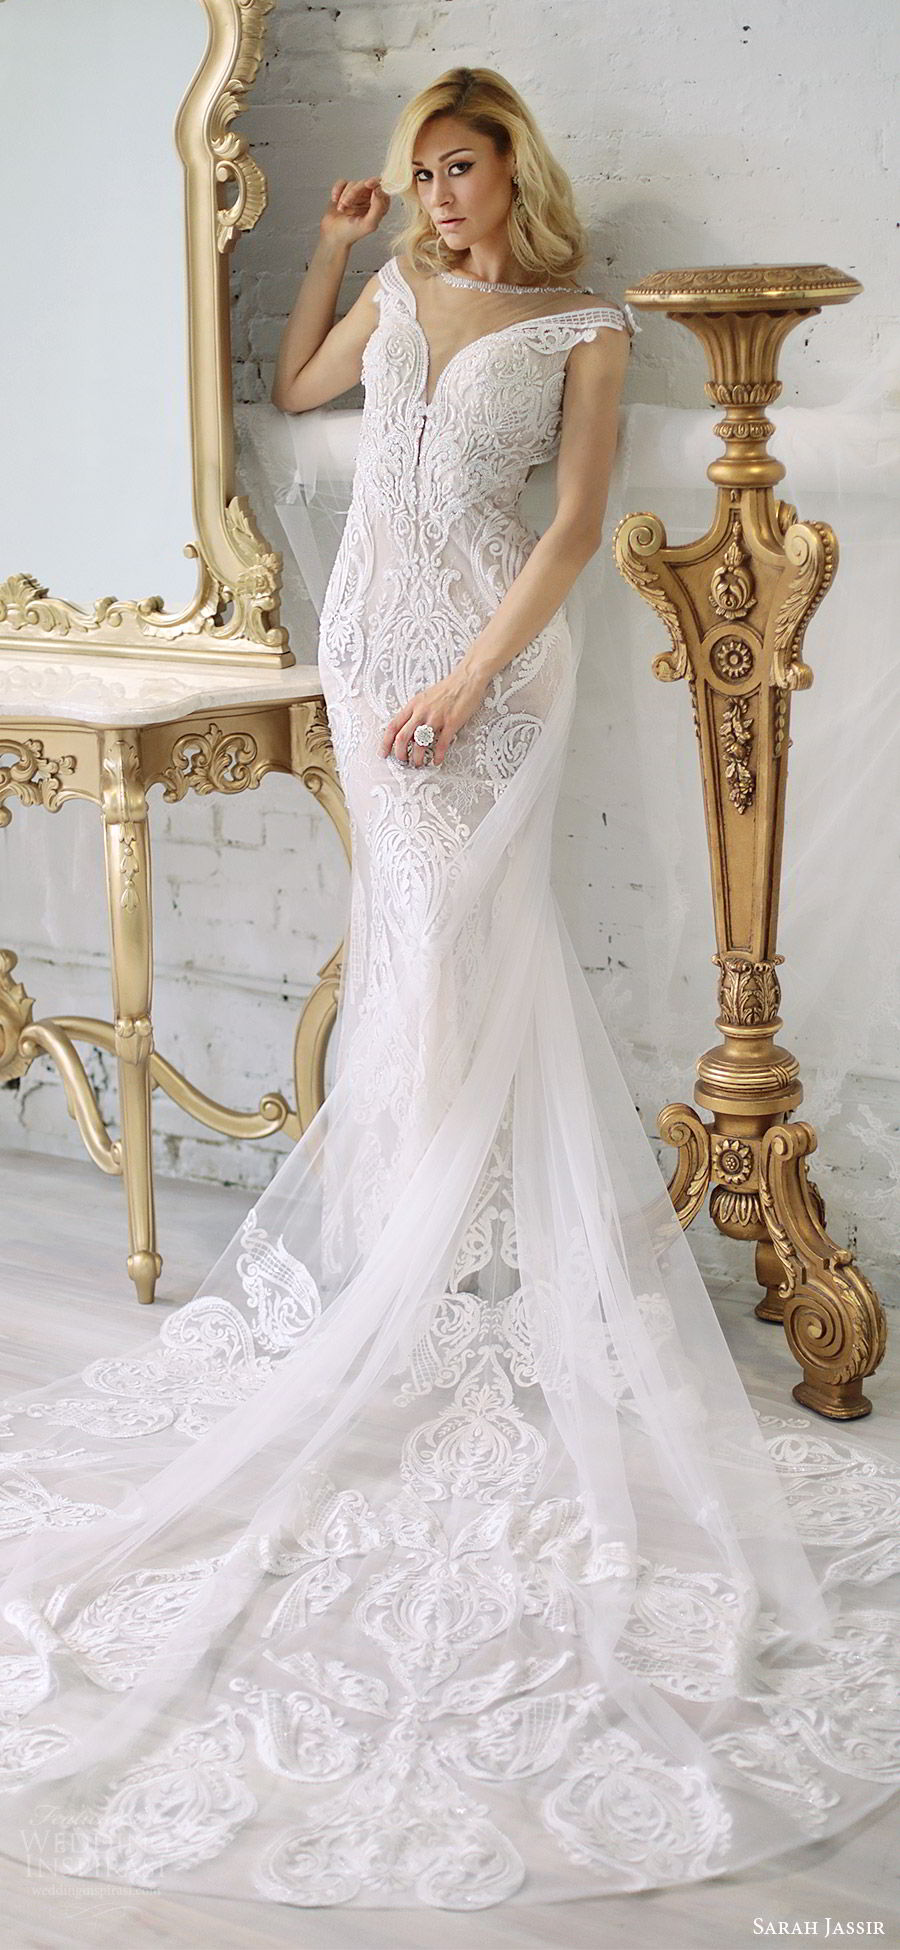 sarah jassir bridal 2018 off shoulder deep v neck illusion jewel neckline cap sleeves sheath lace wedding dress (andi) mv chapel train elegant